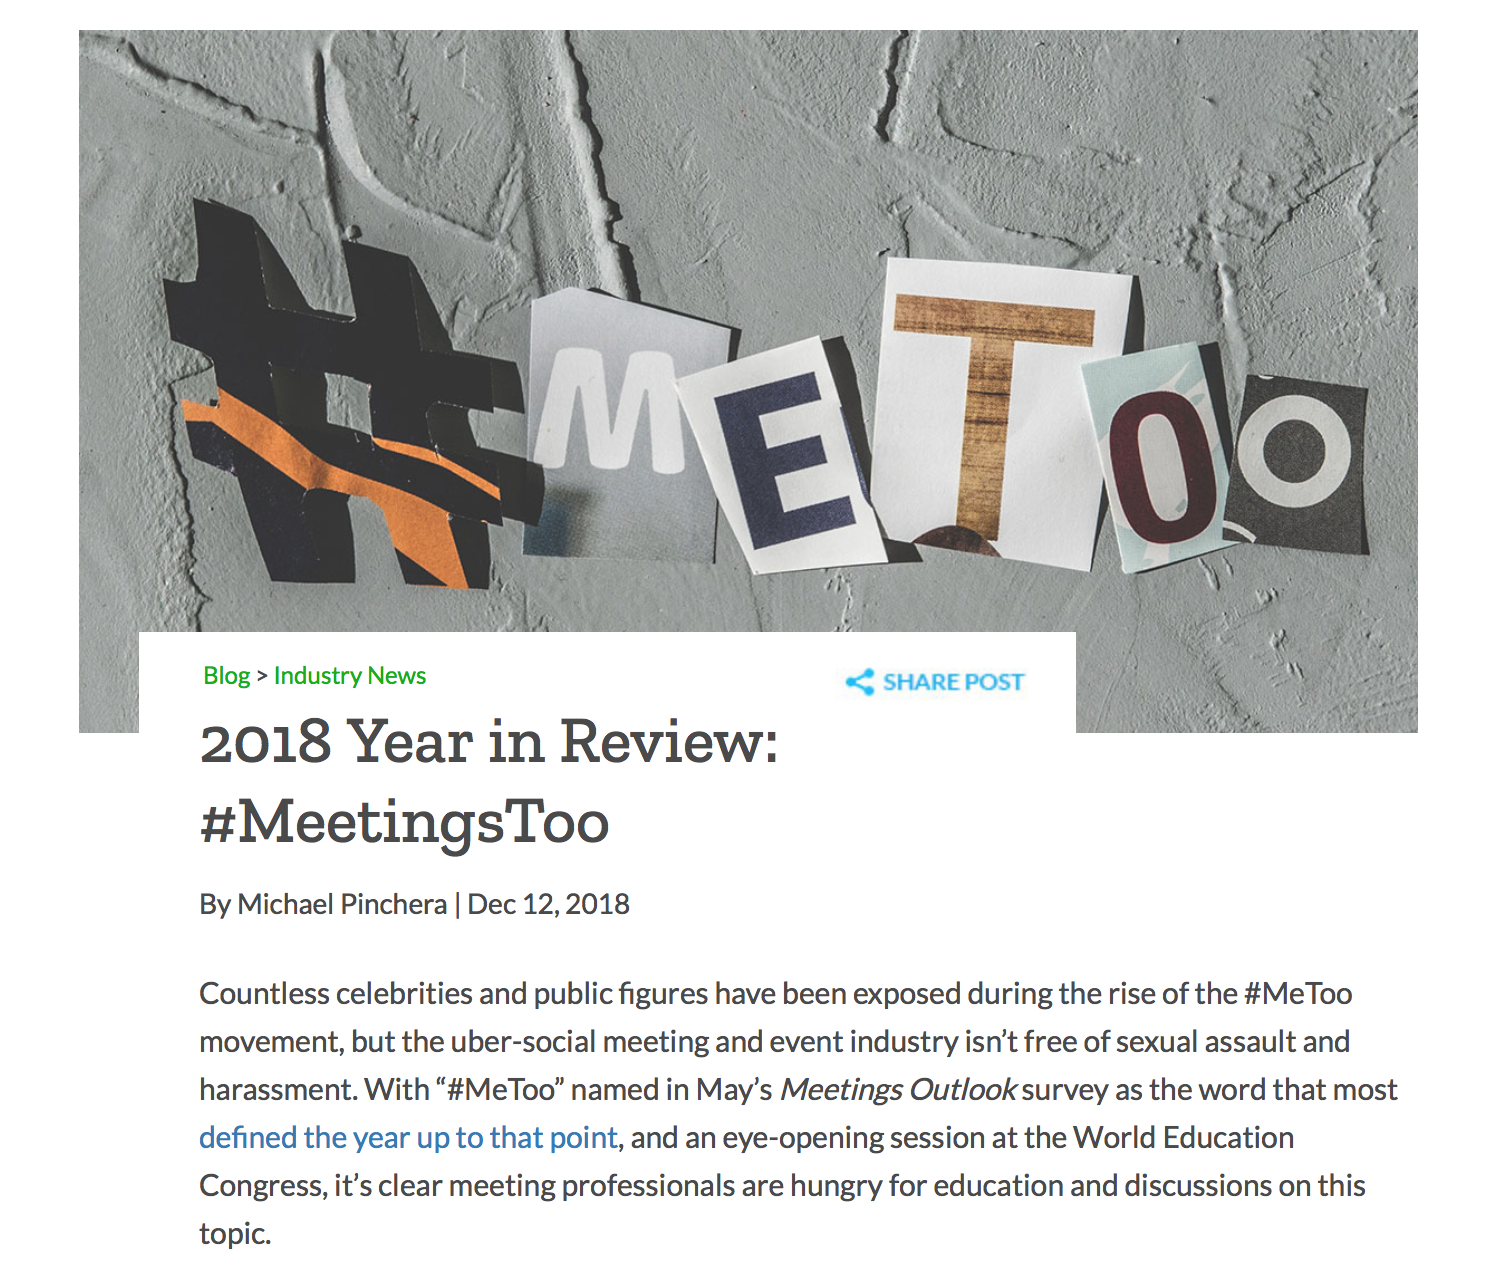 2018 Year in Review: #MeetingsToo | MPI